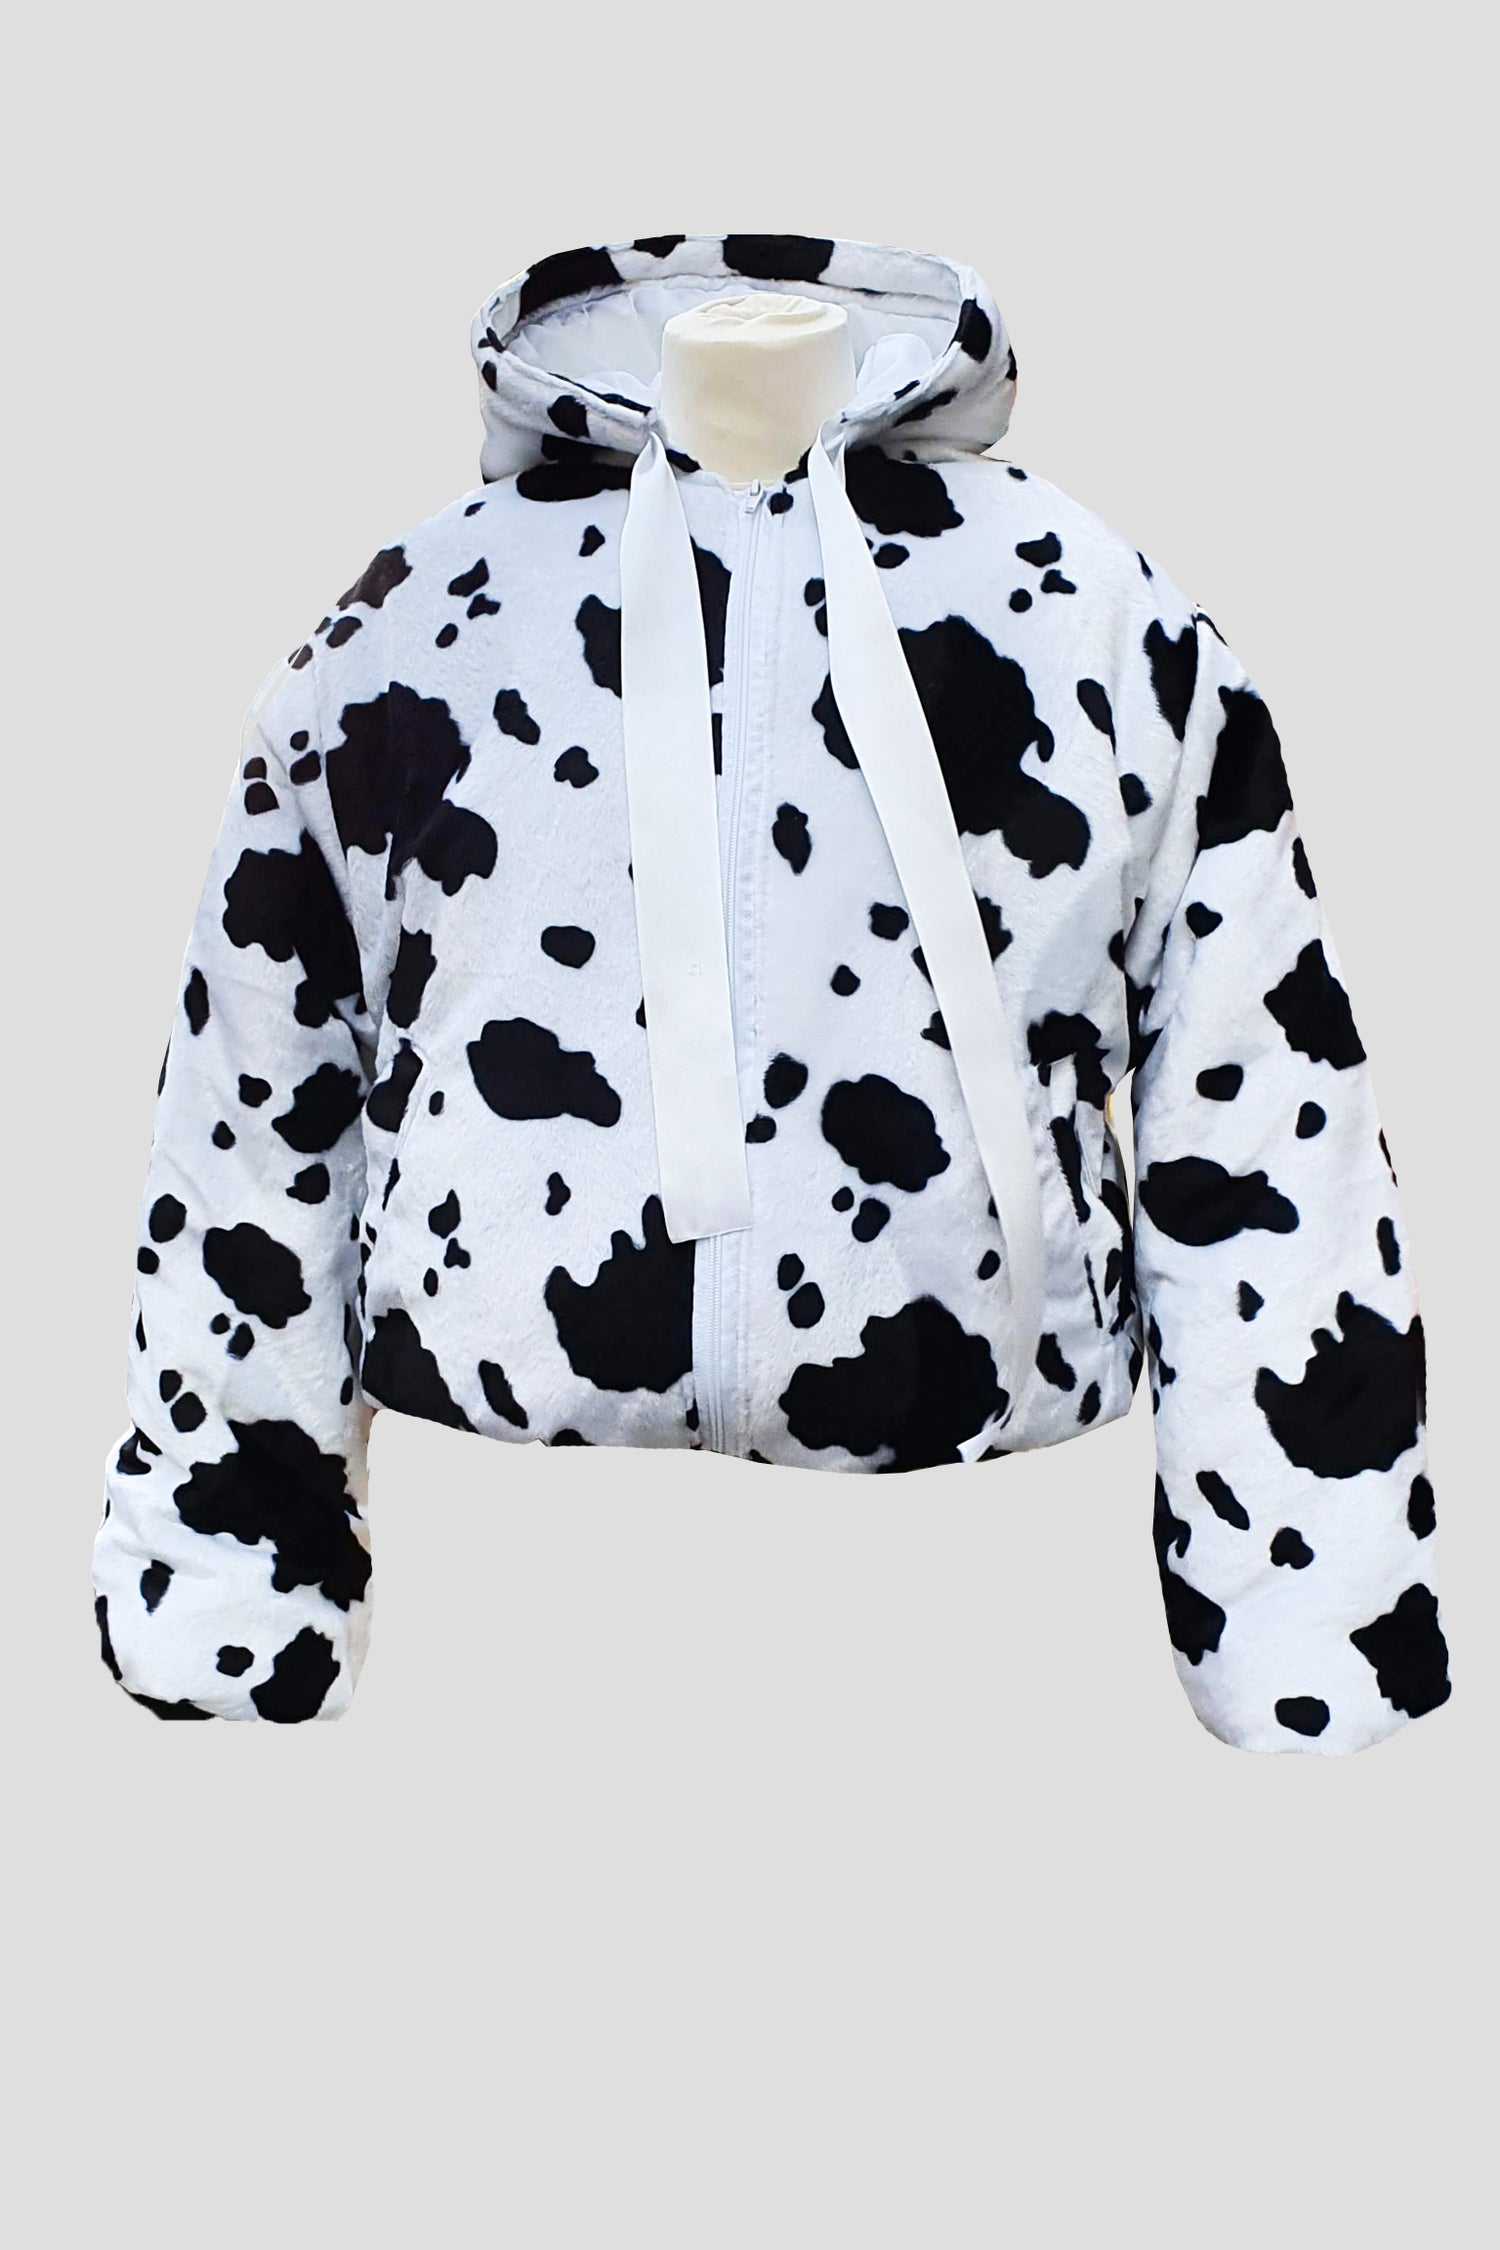 Image of COW puffy jacket